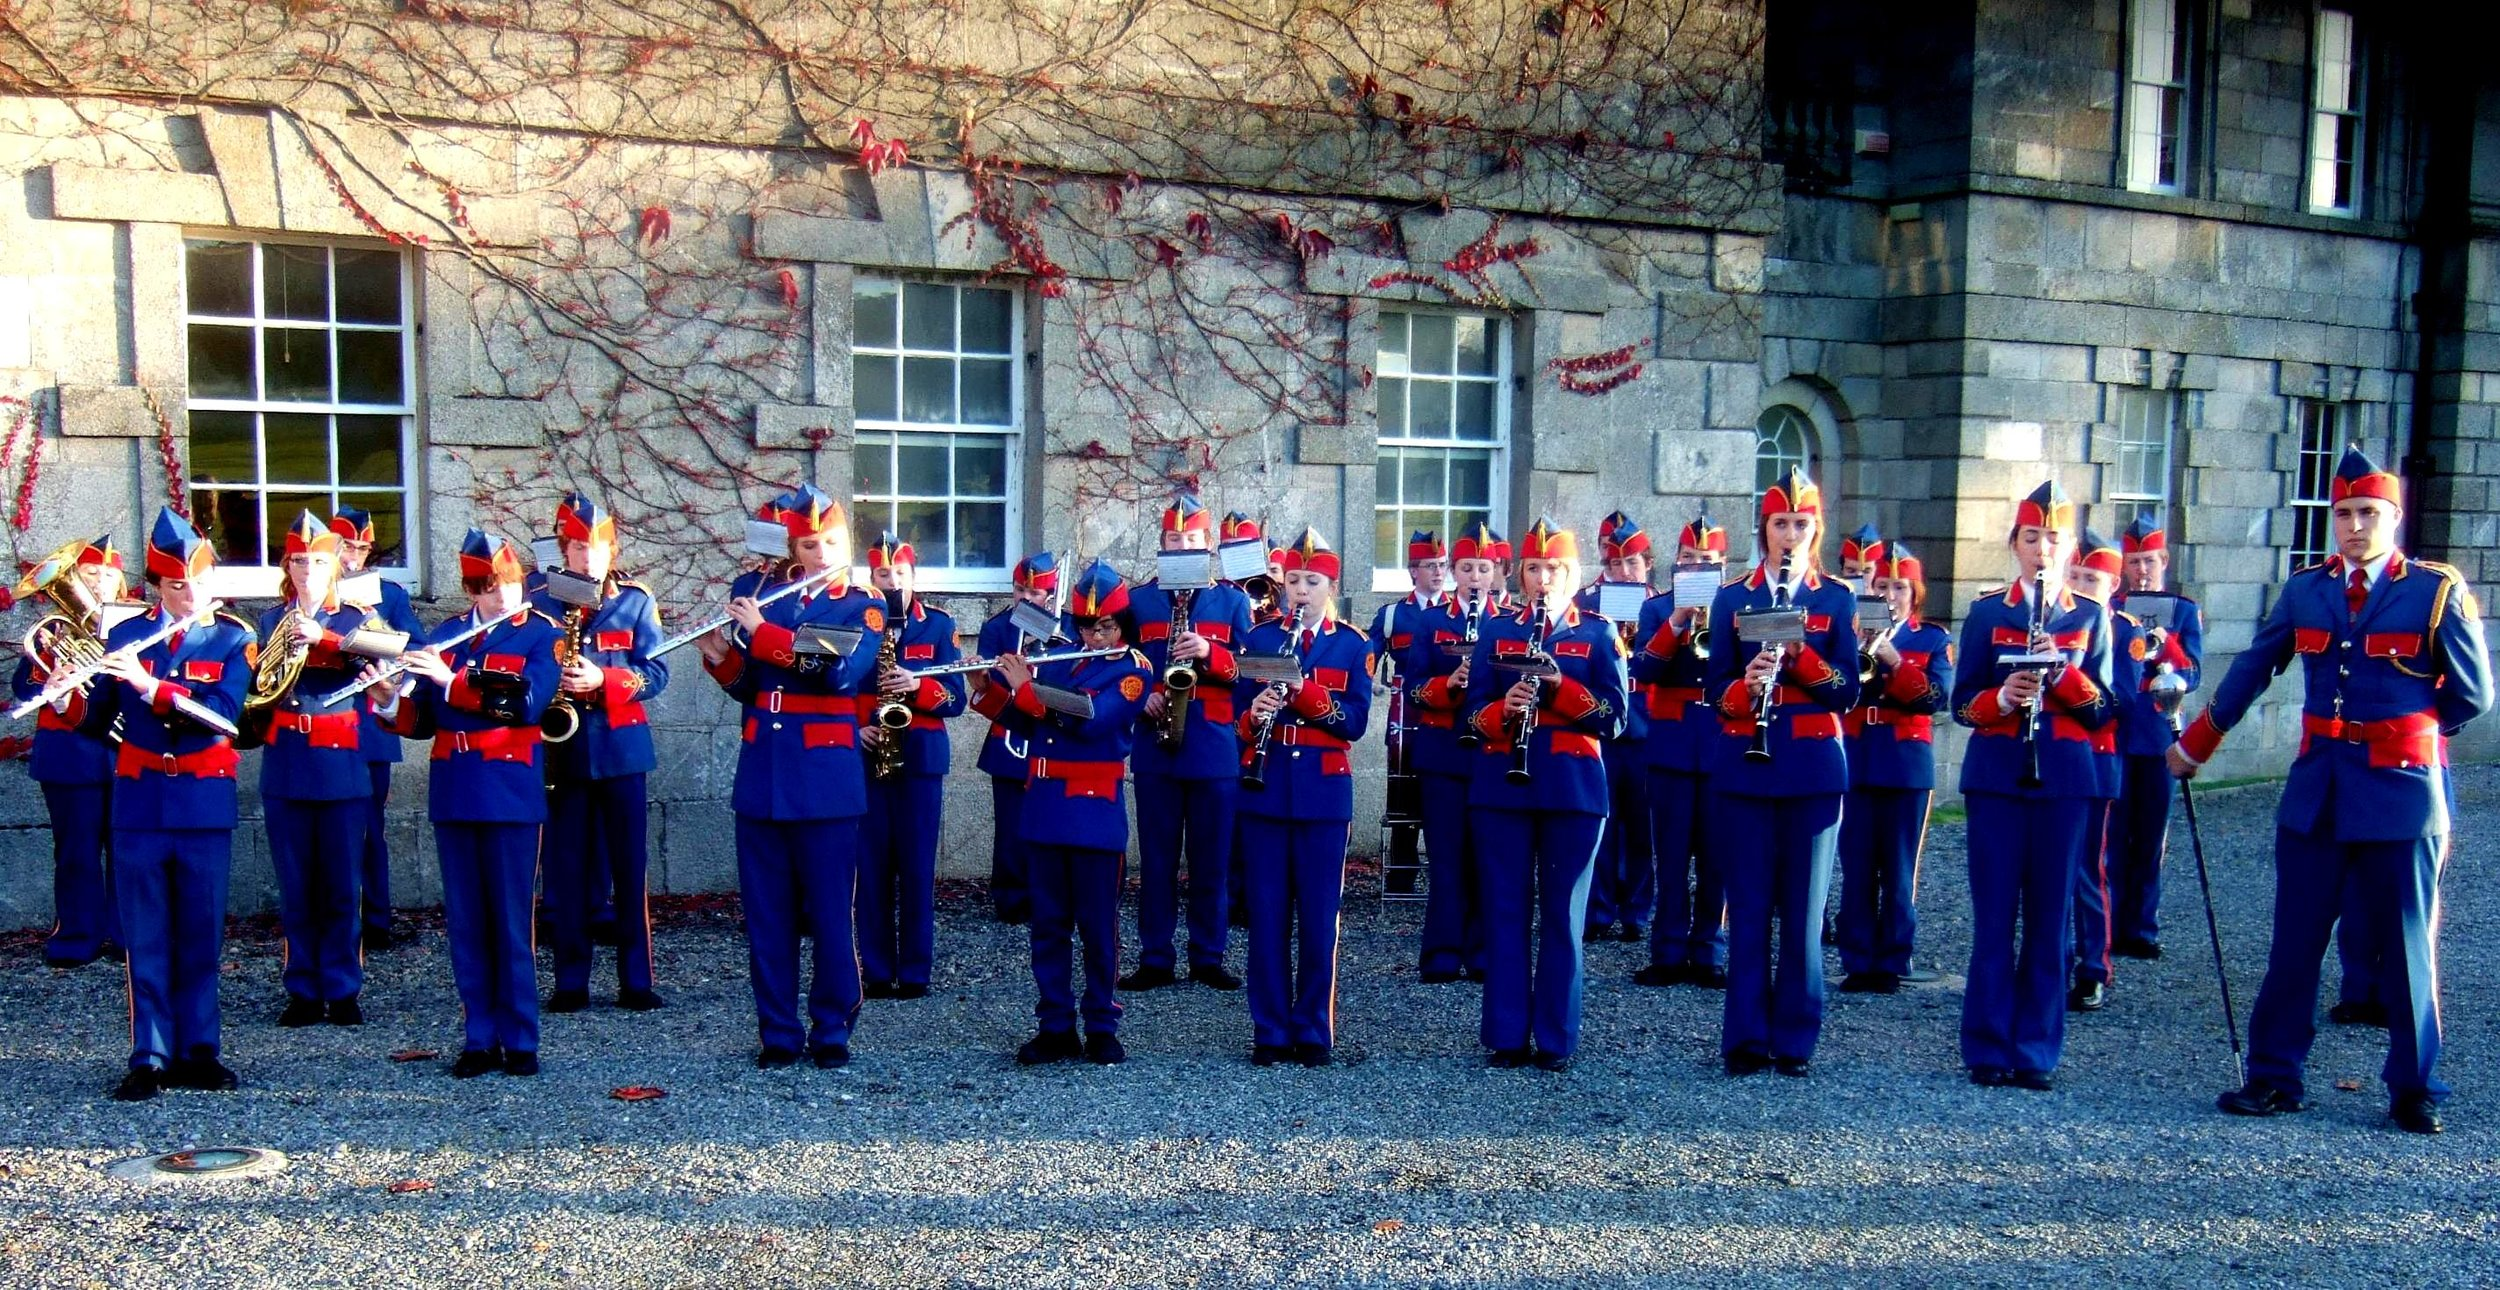 THE ARTANE BAND